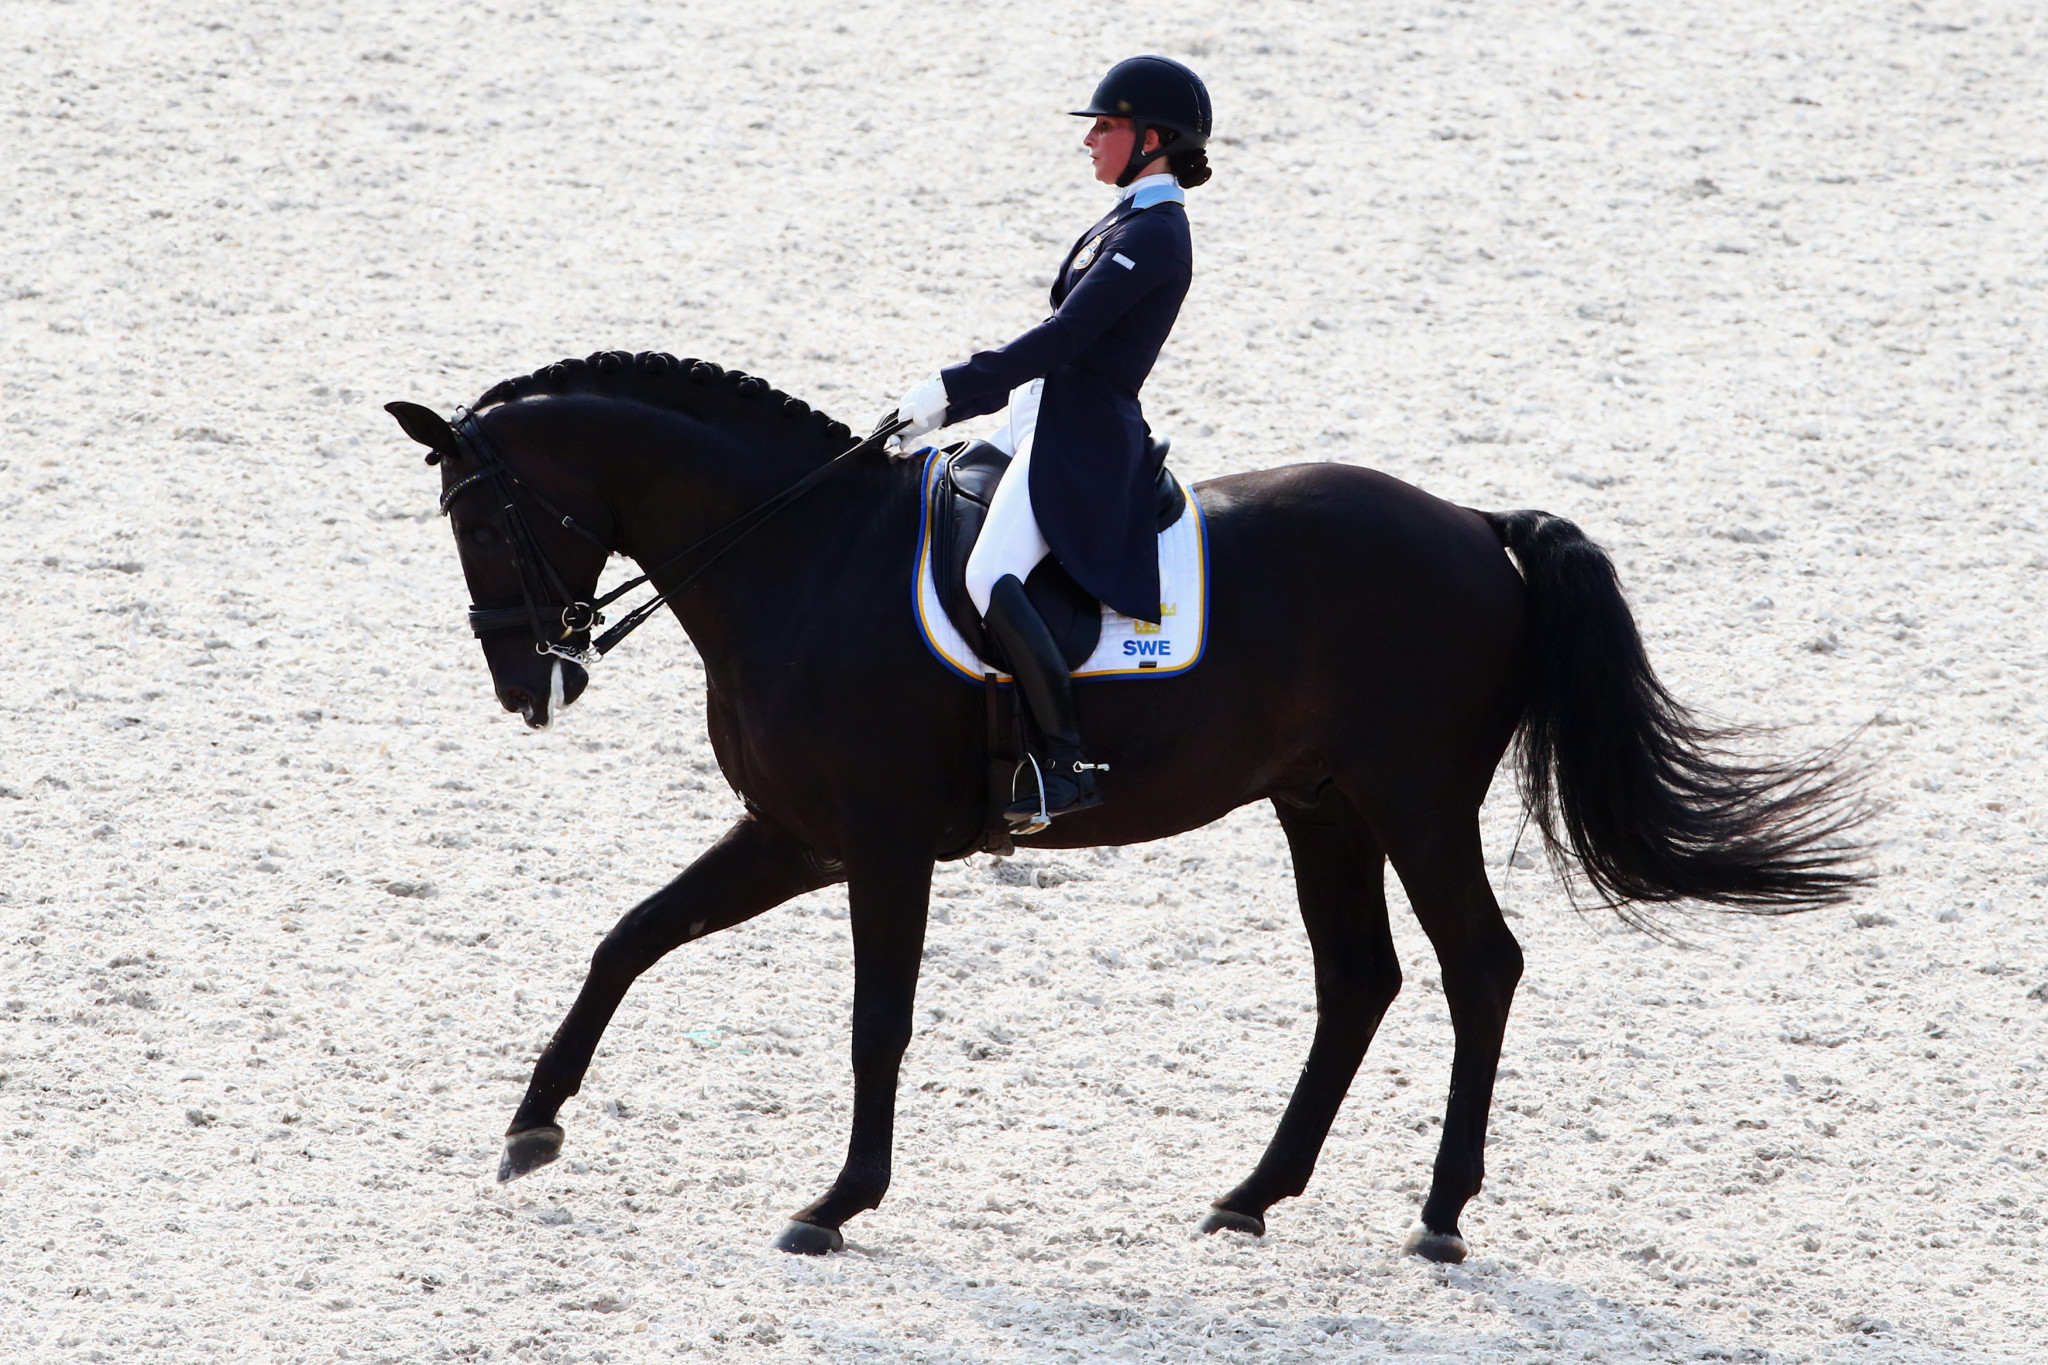 Sweden's Minna Telde impressed at the FEI Dressage Nations Cup in Uggerhalne ©Getty Images